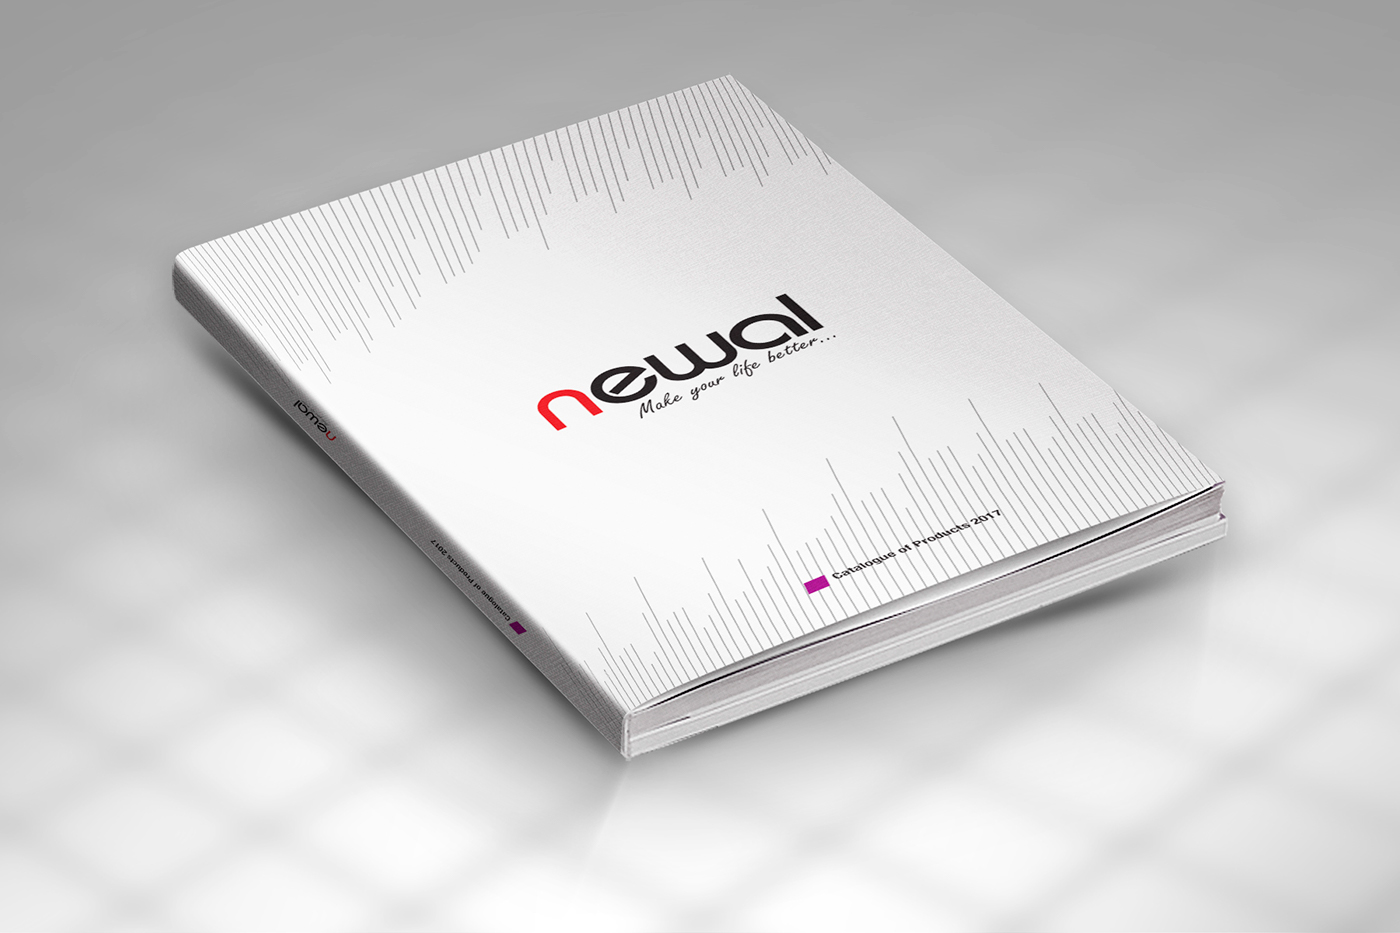 48c4c009ba13 Products Catalogue 2017 (Newal) on Behance